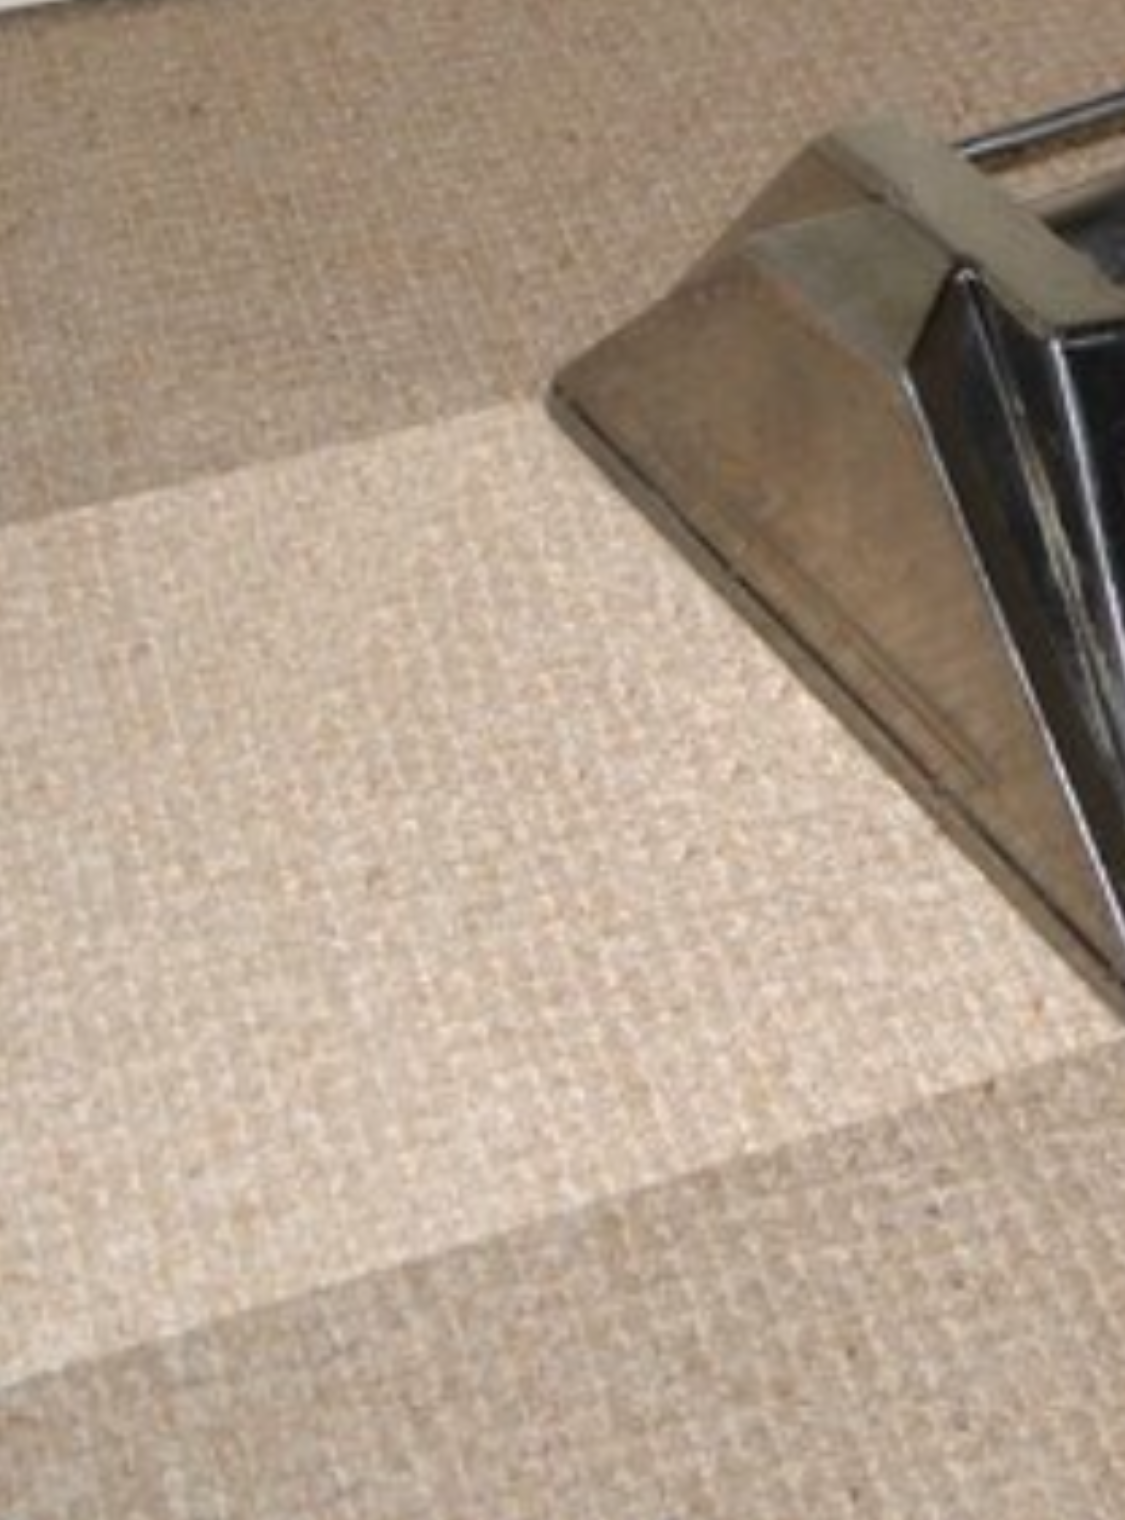 Super Steamers Carpet Cleaners image 1